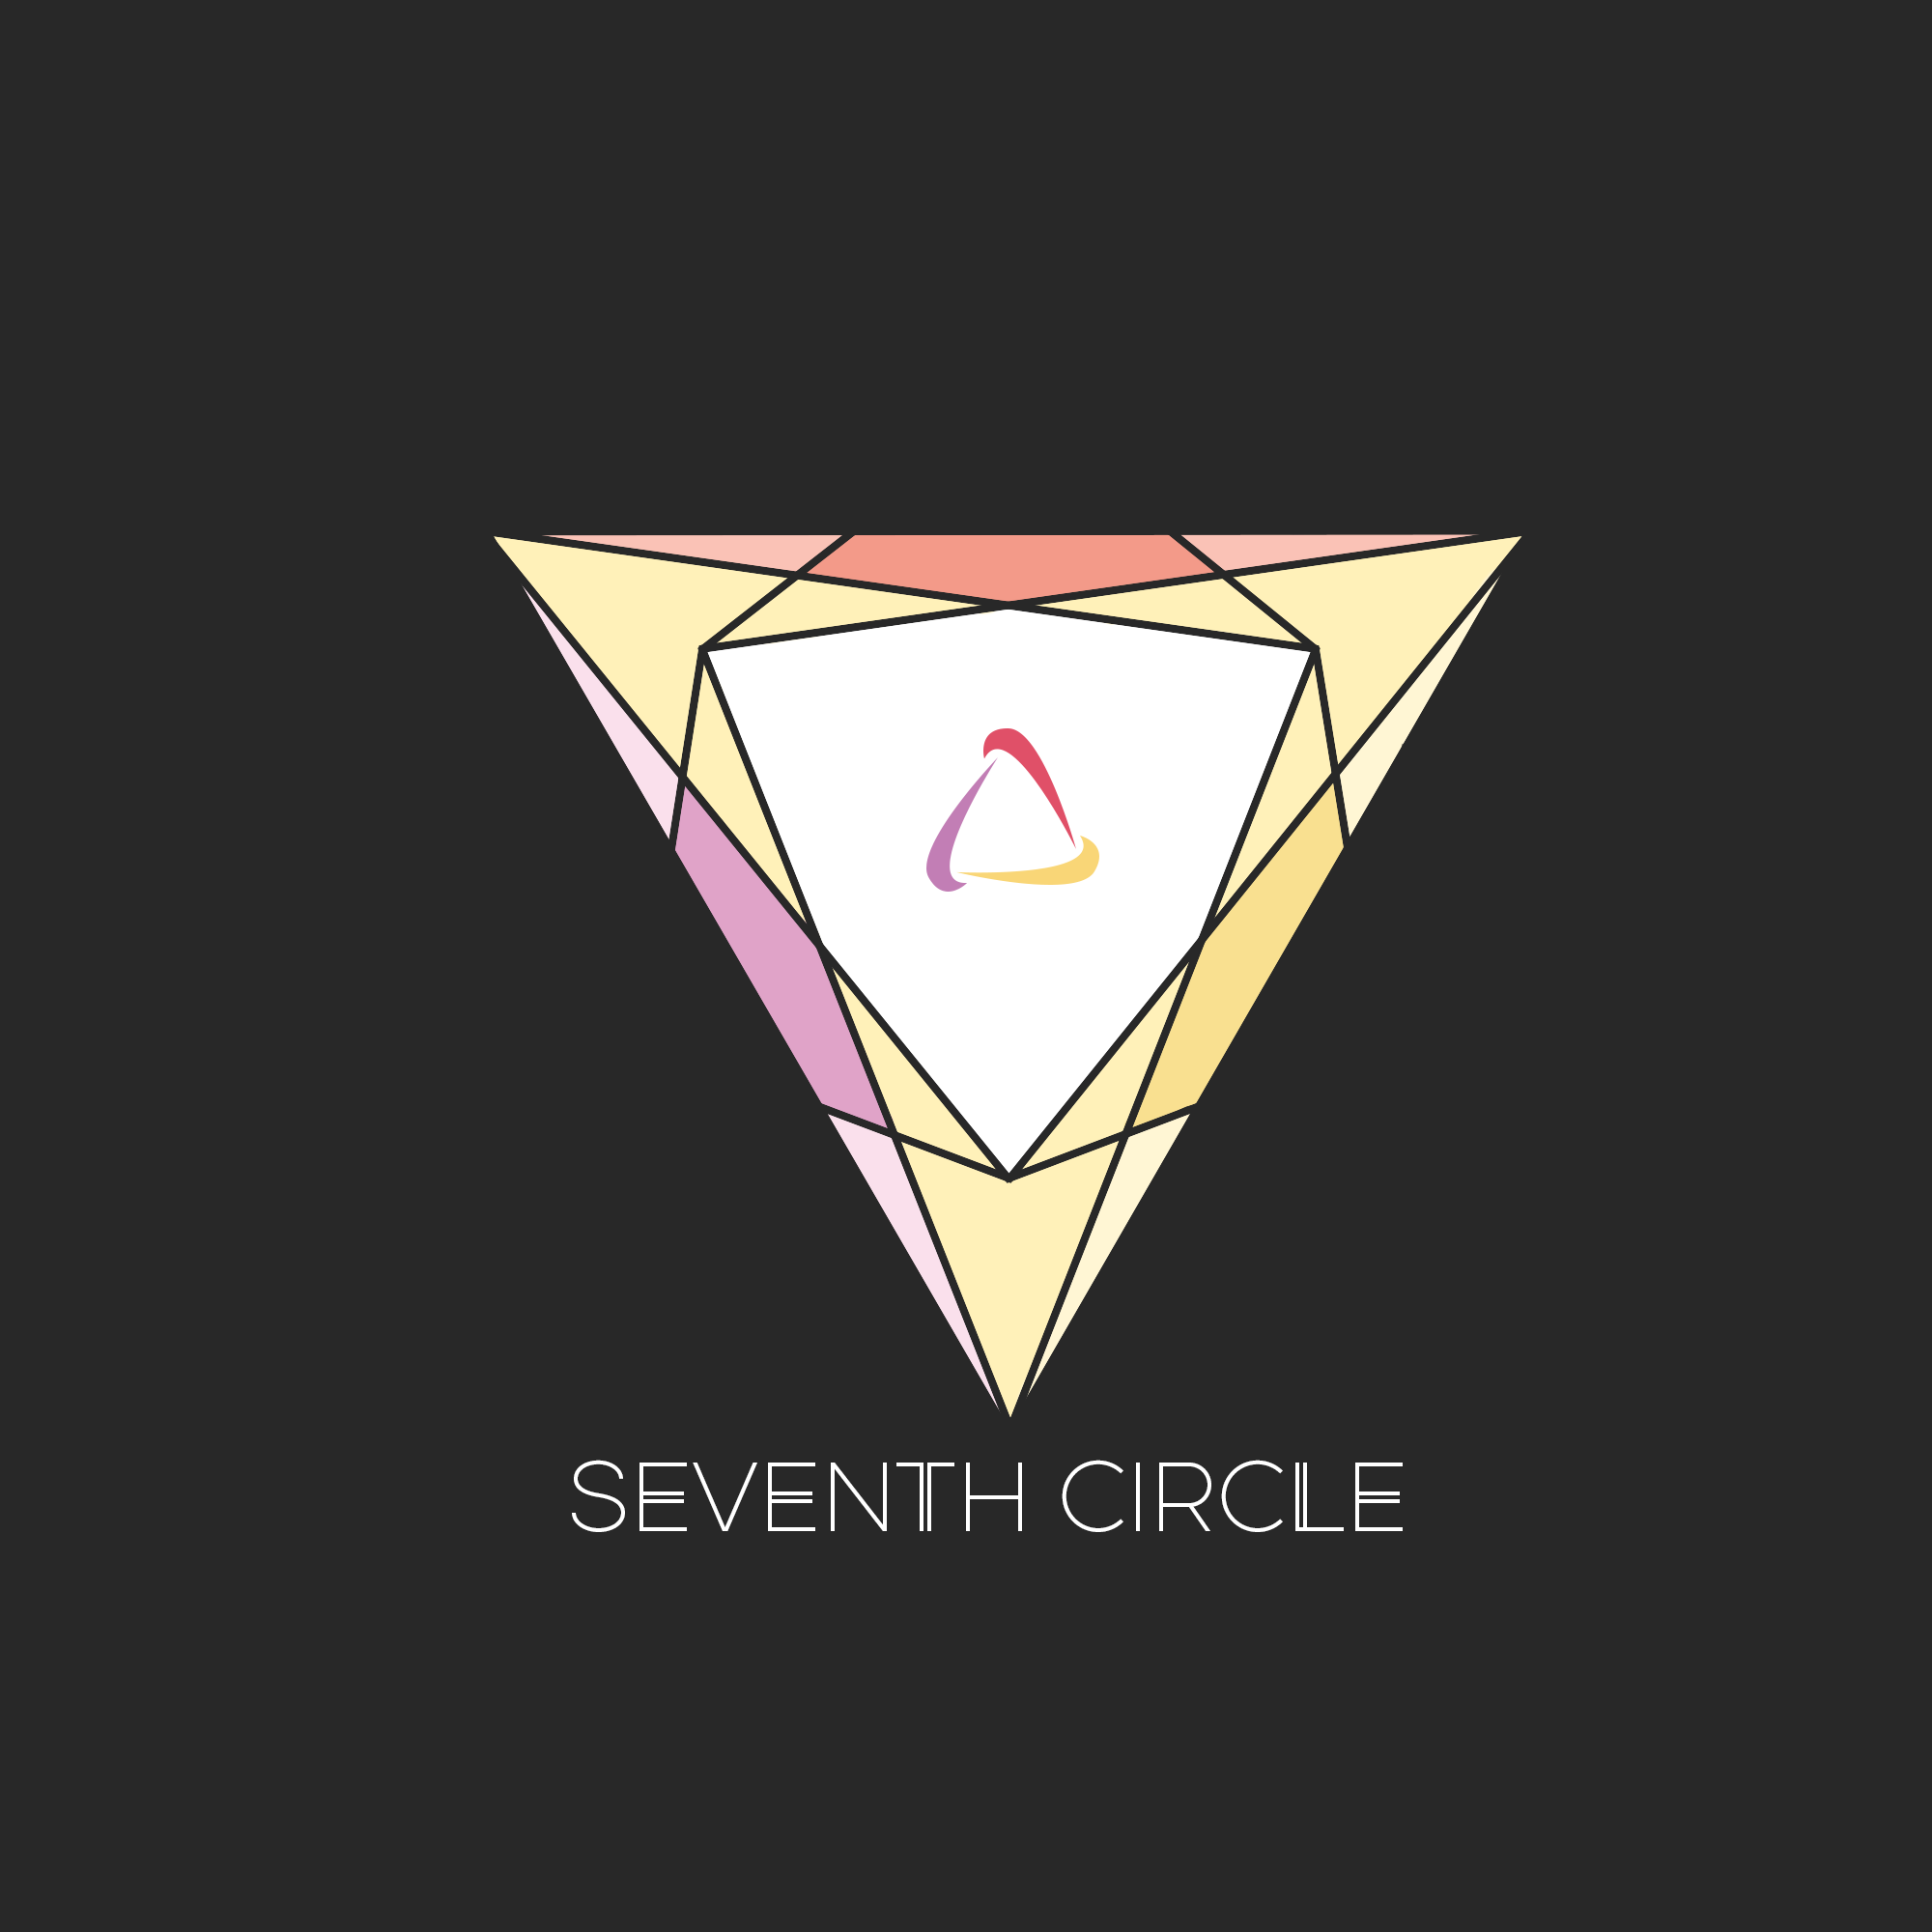 Seventh Circle - is the debut project from Rock Candy Games. It's an urban fantasy visual novel successfully crowdfunded via Kickstarter in March and April of 2018 . You play as the newest member of a magic dueling league called the Trillian, navigating friendships, rivalries, and budding romance.Release Date: September 19th 2019Play the demo on itch.io